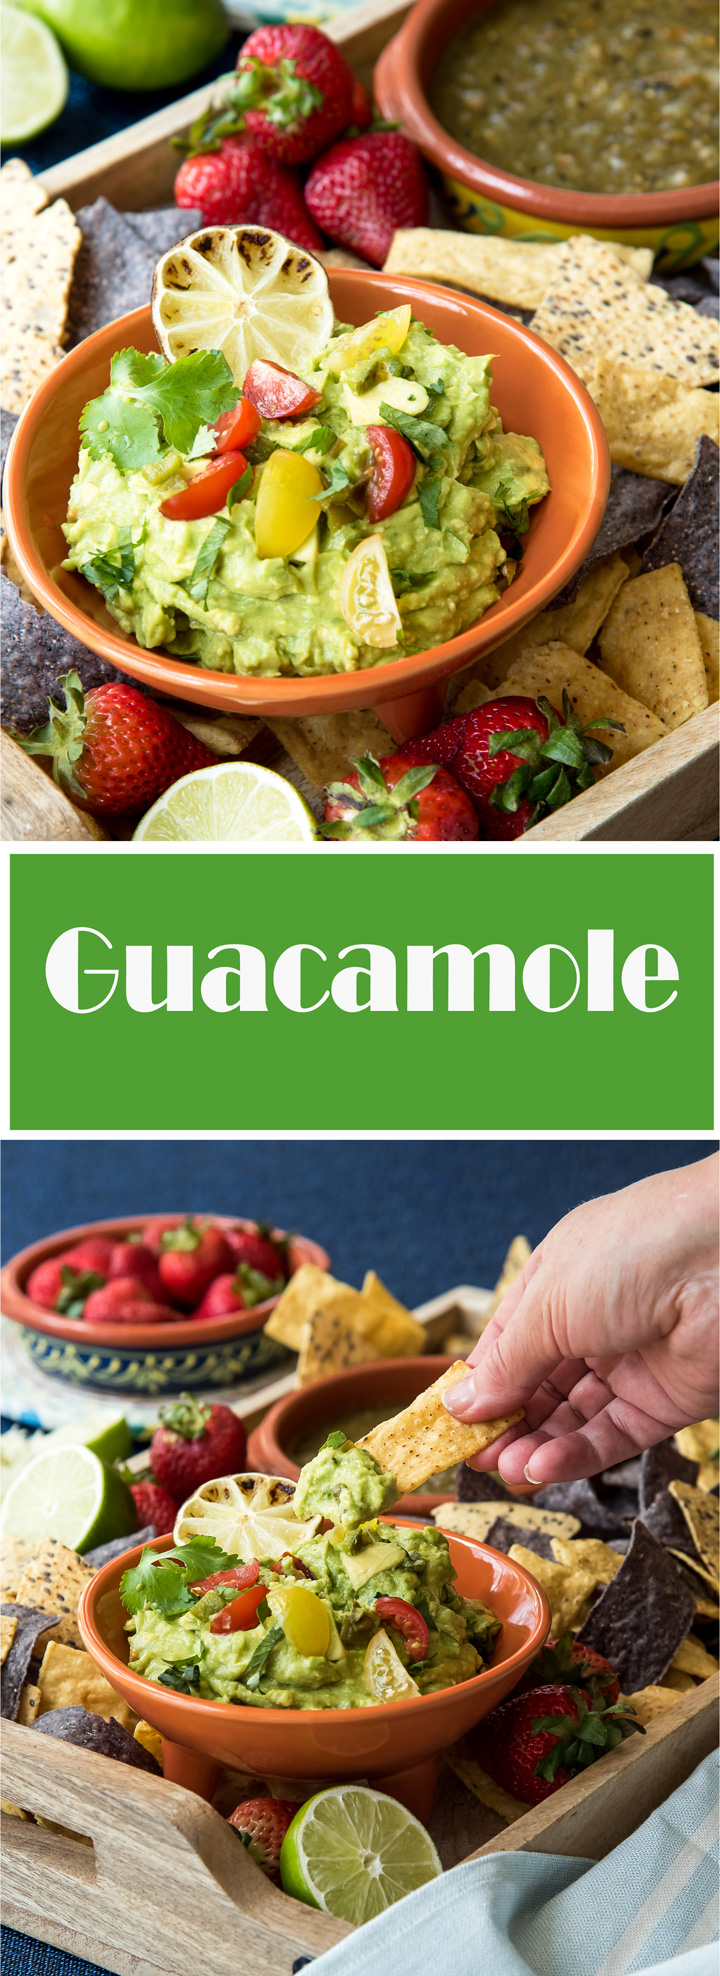 Family Favorite Guacamole. How to make delicious guacamole. Start with the foundation recipe, then adjust the flavor with roasted tomatillos, or salsas for the perfect guacamole every time.